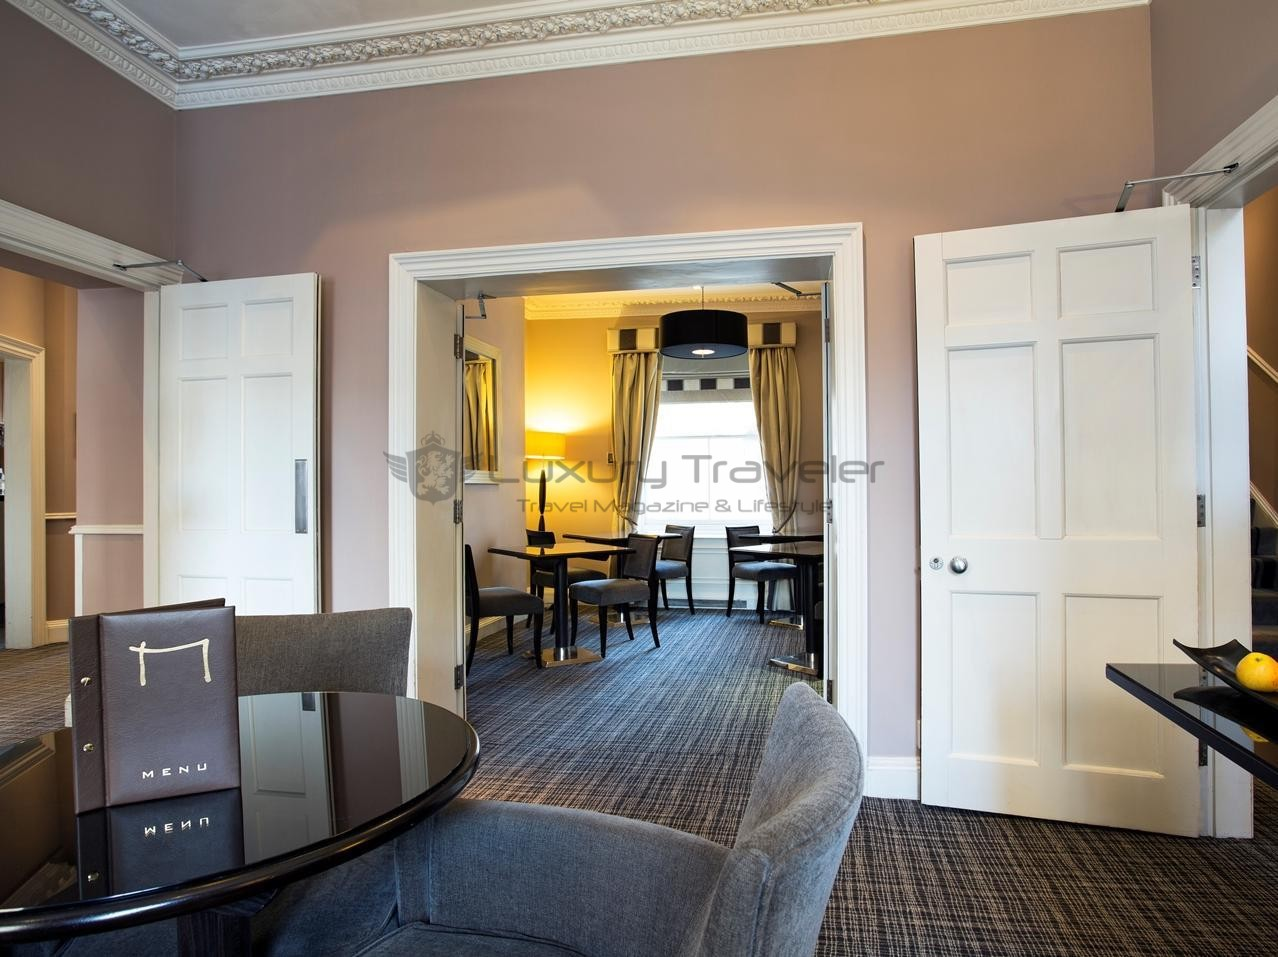 Montagu_Place_Hotel_London_Luxury